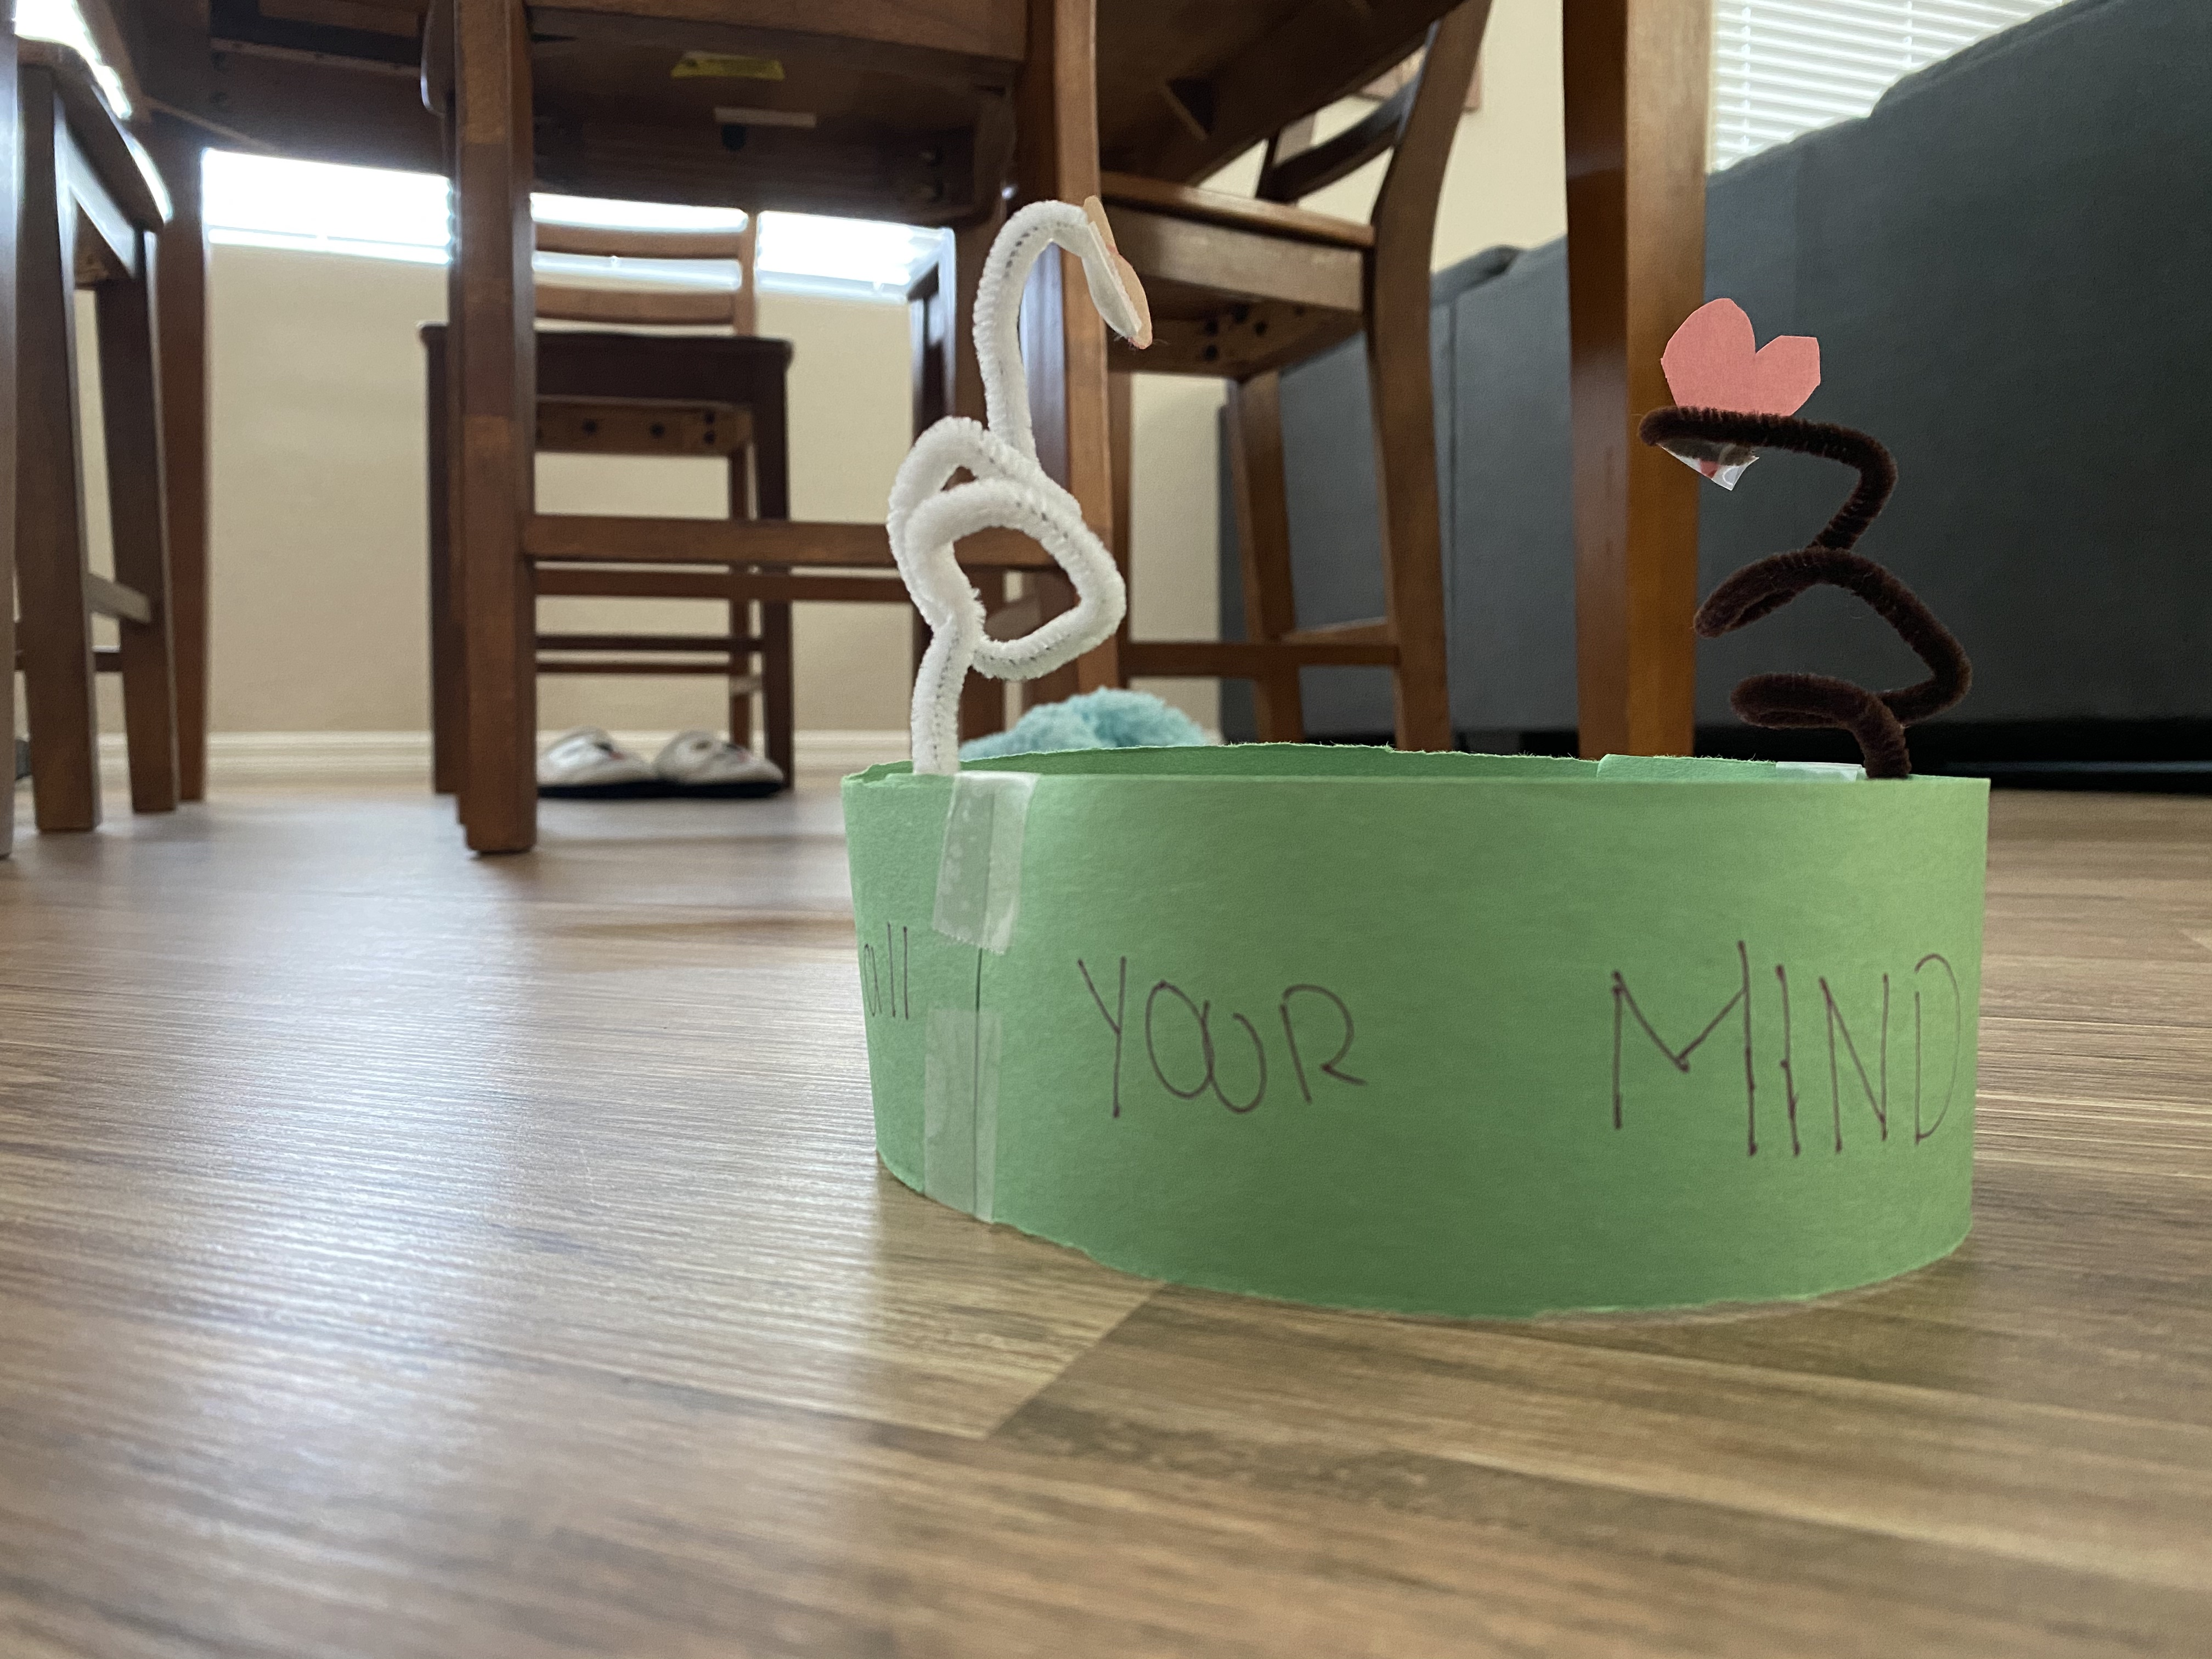 Sunday School at Home - love god with your mind headband